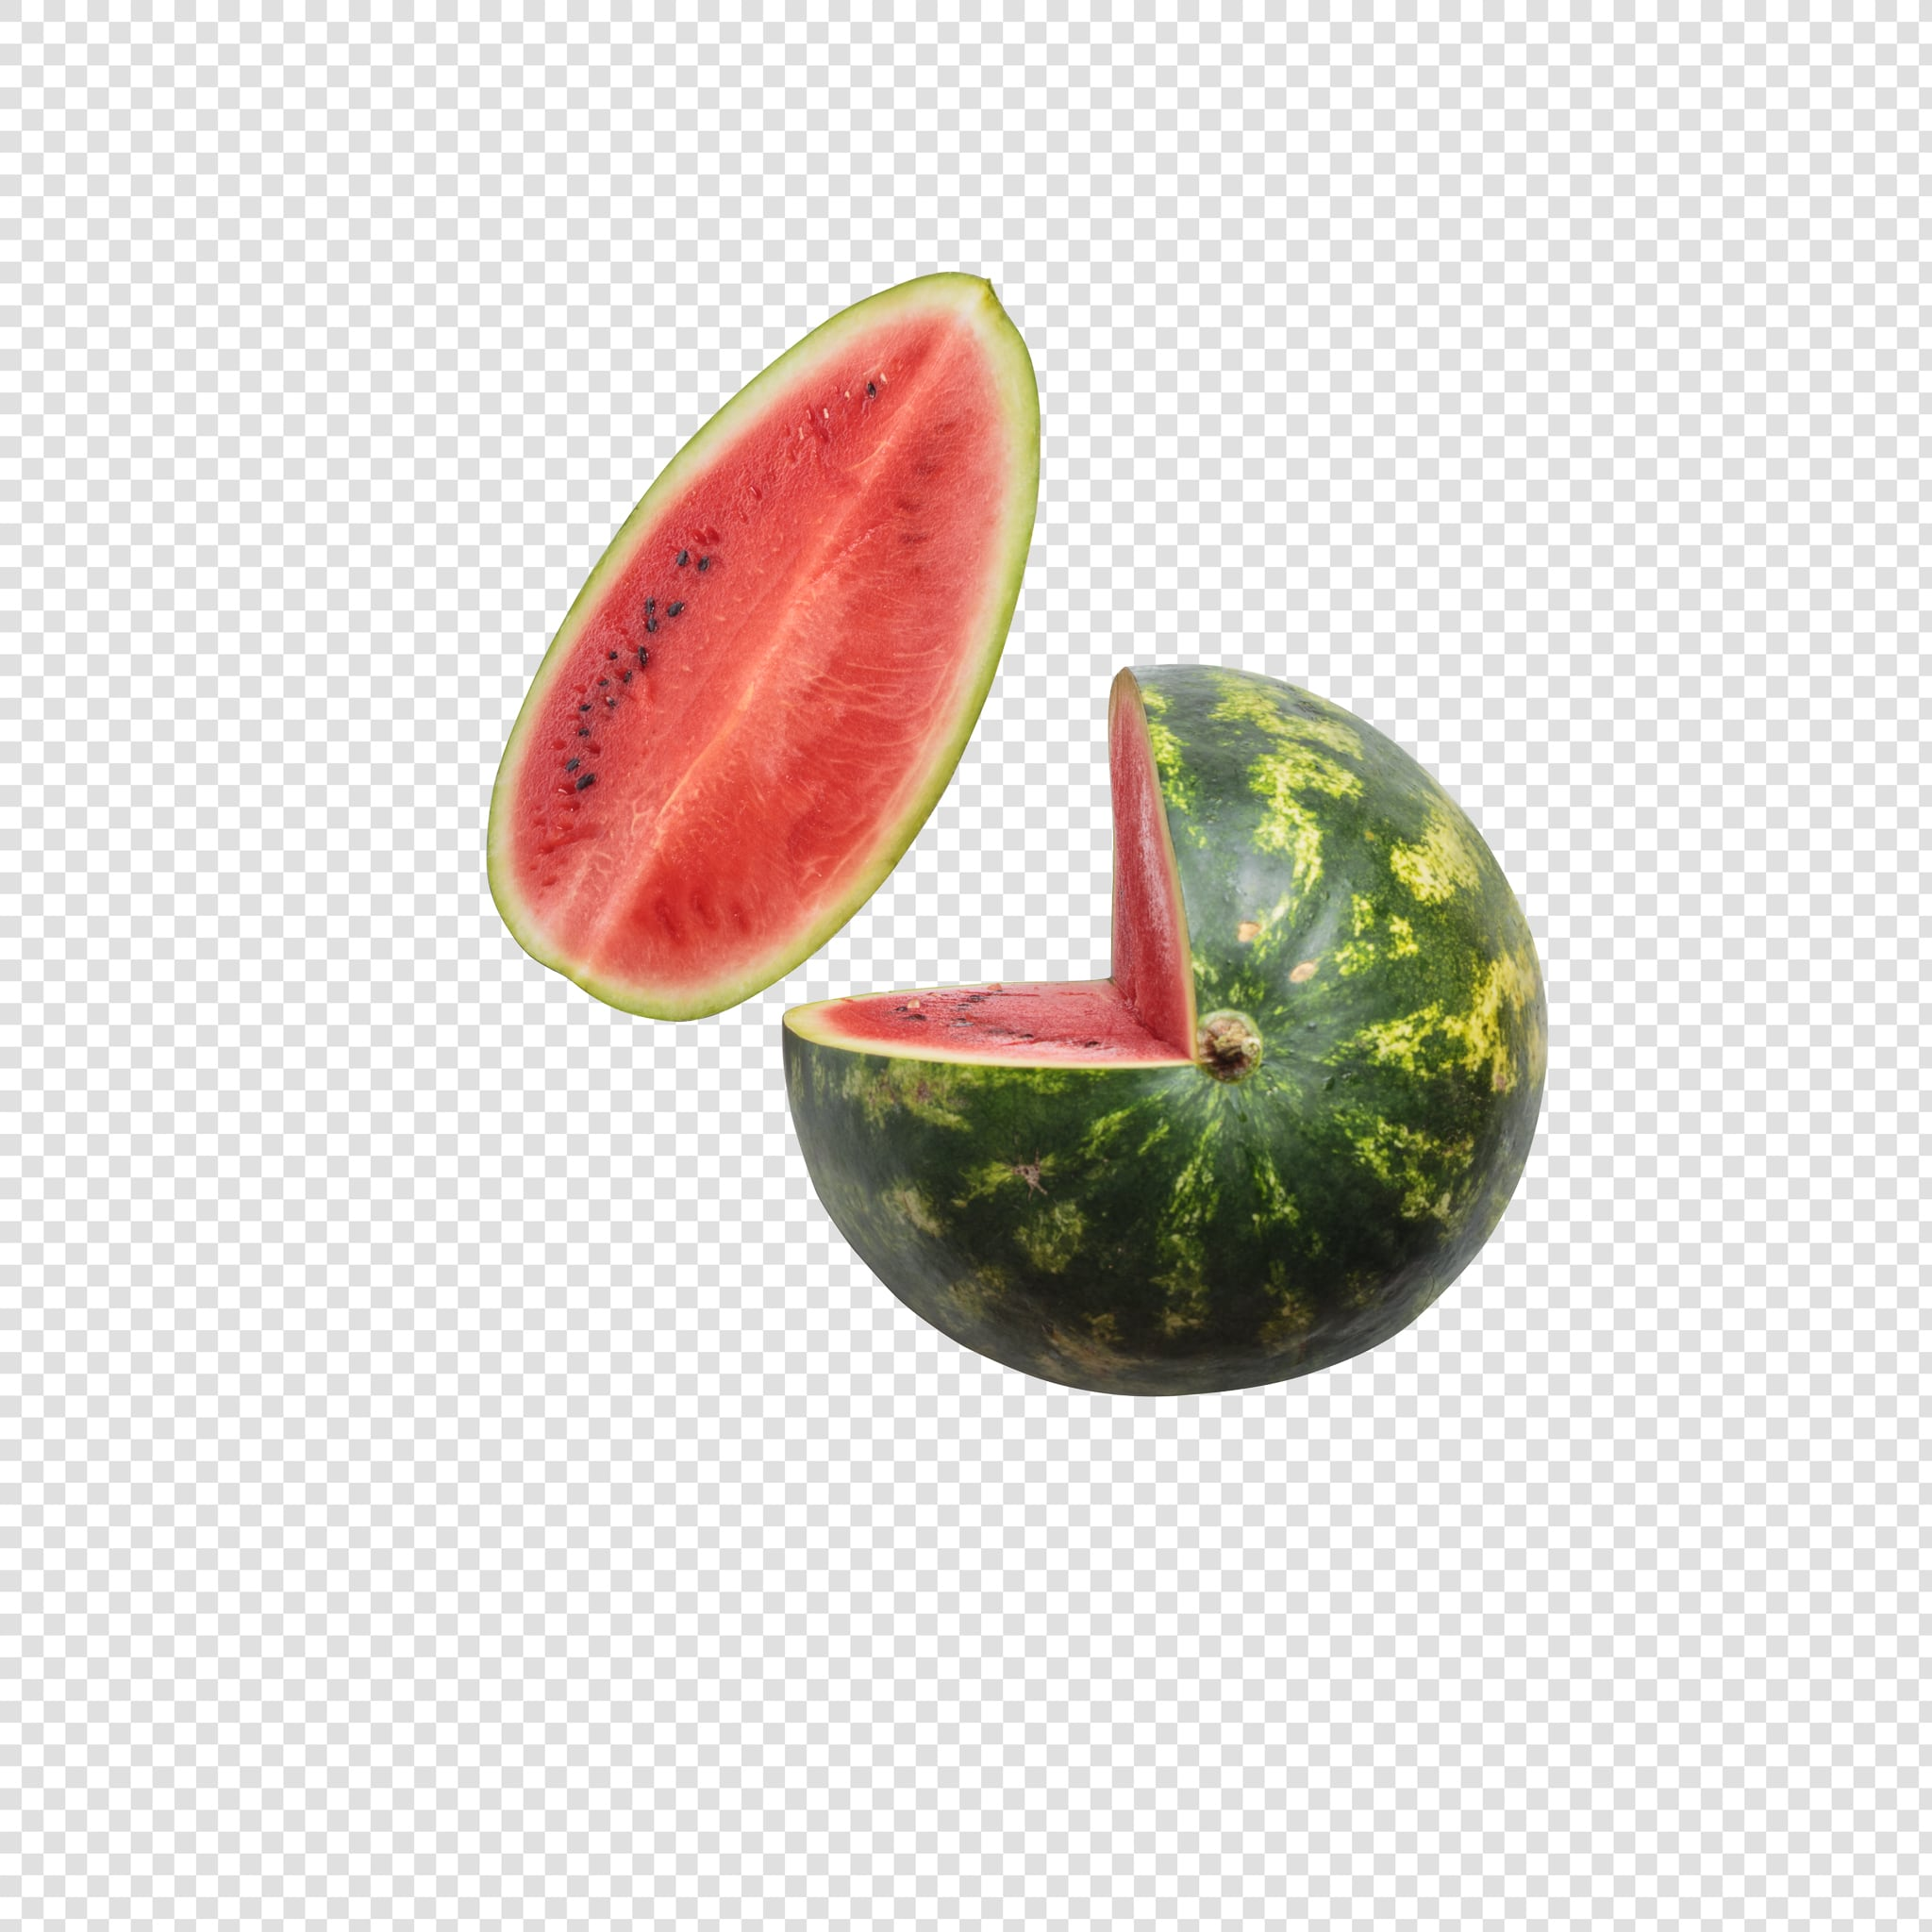 Watermelon PSD image with transparent background